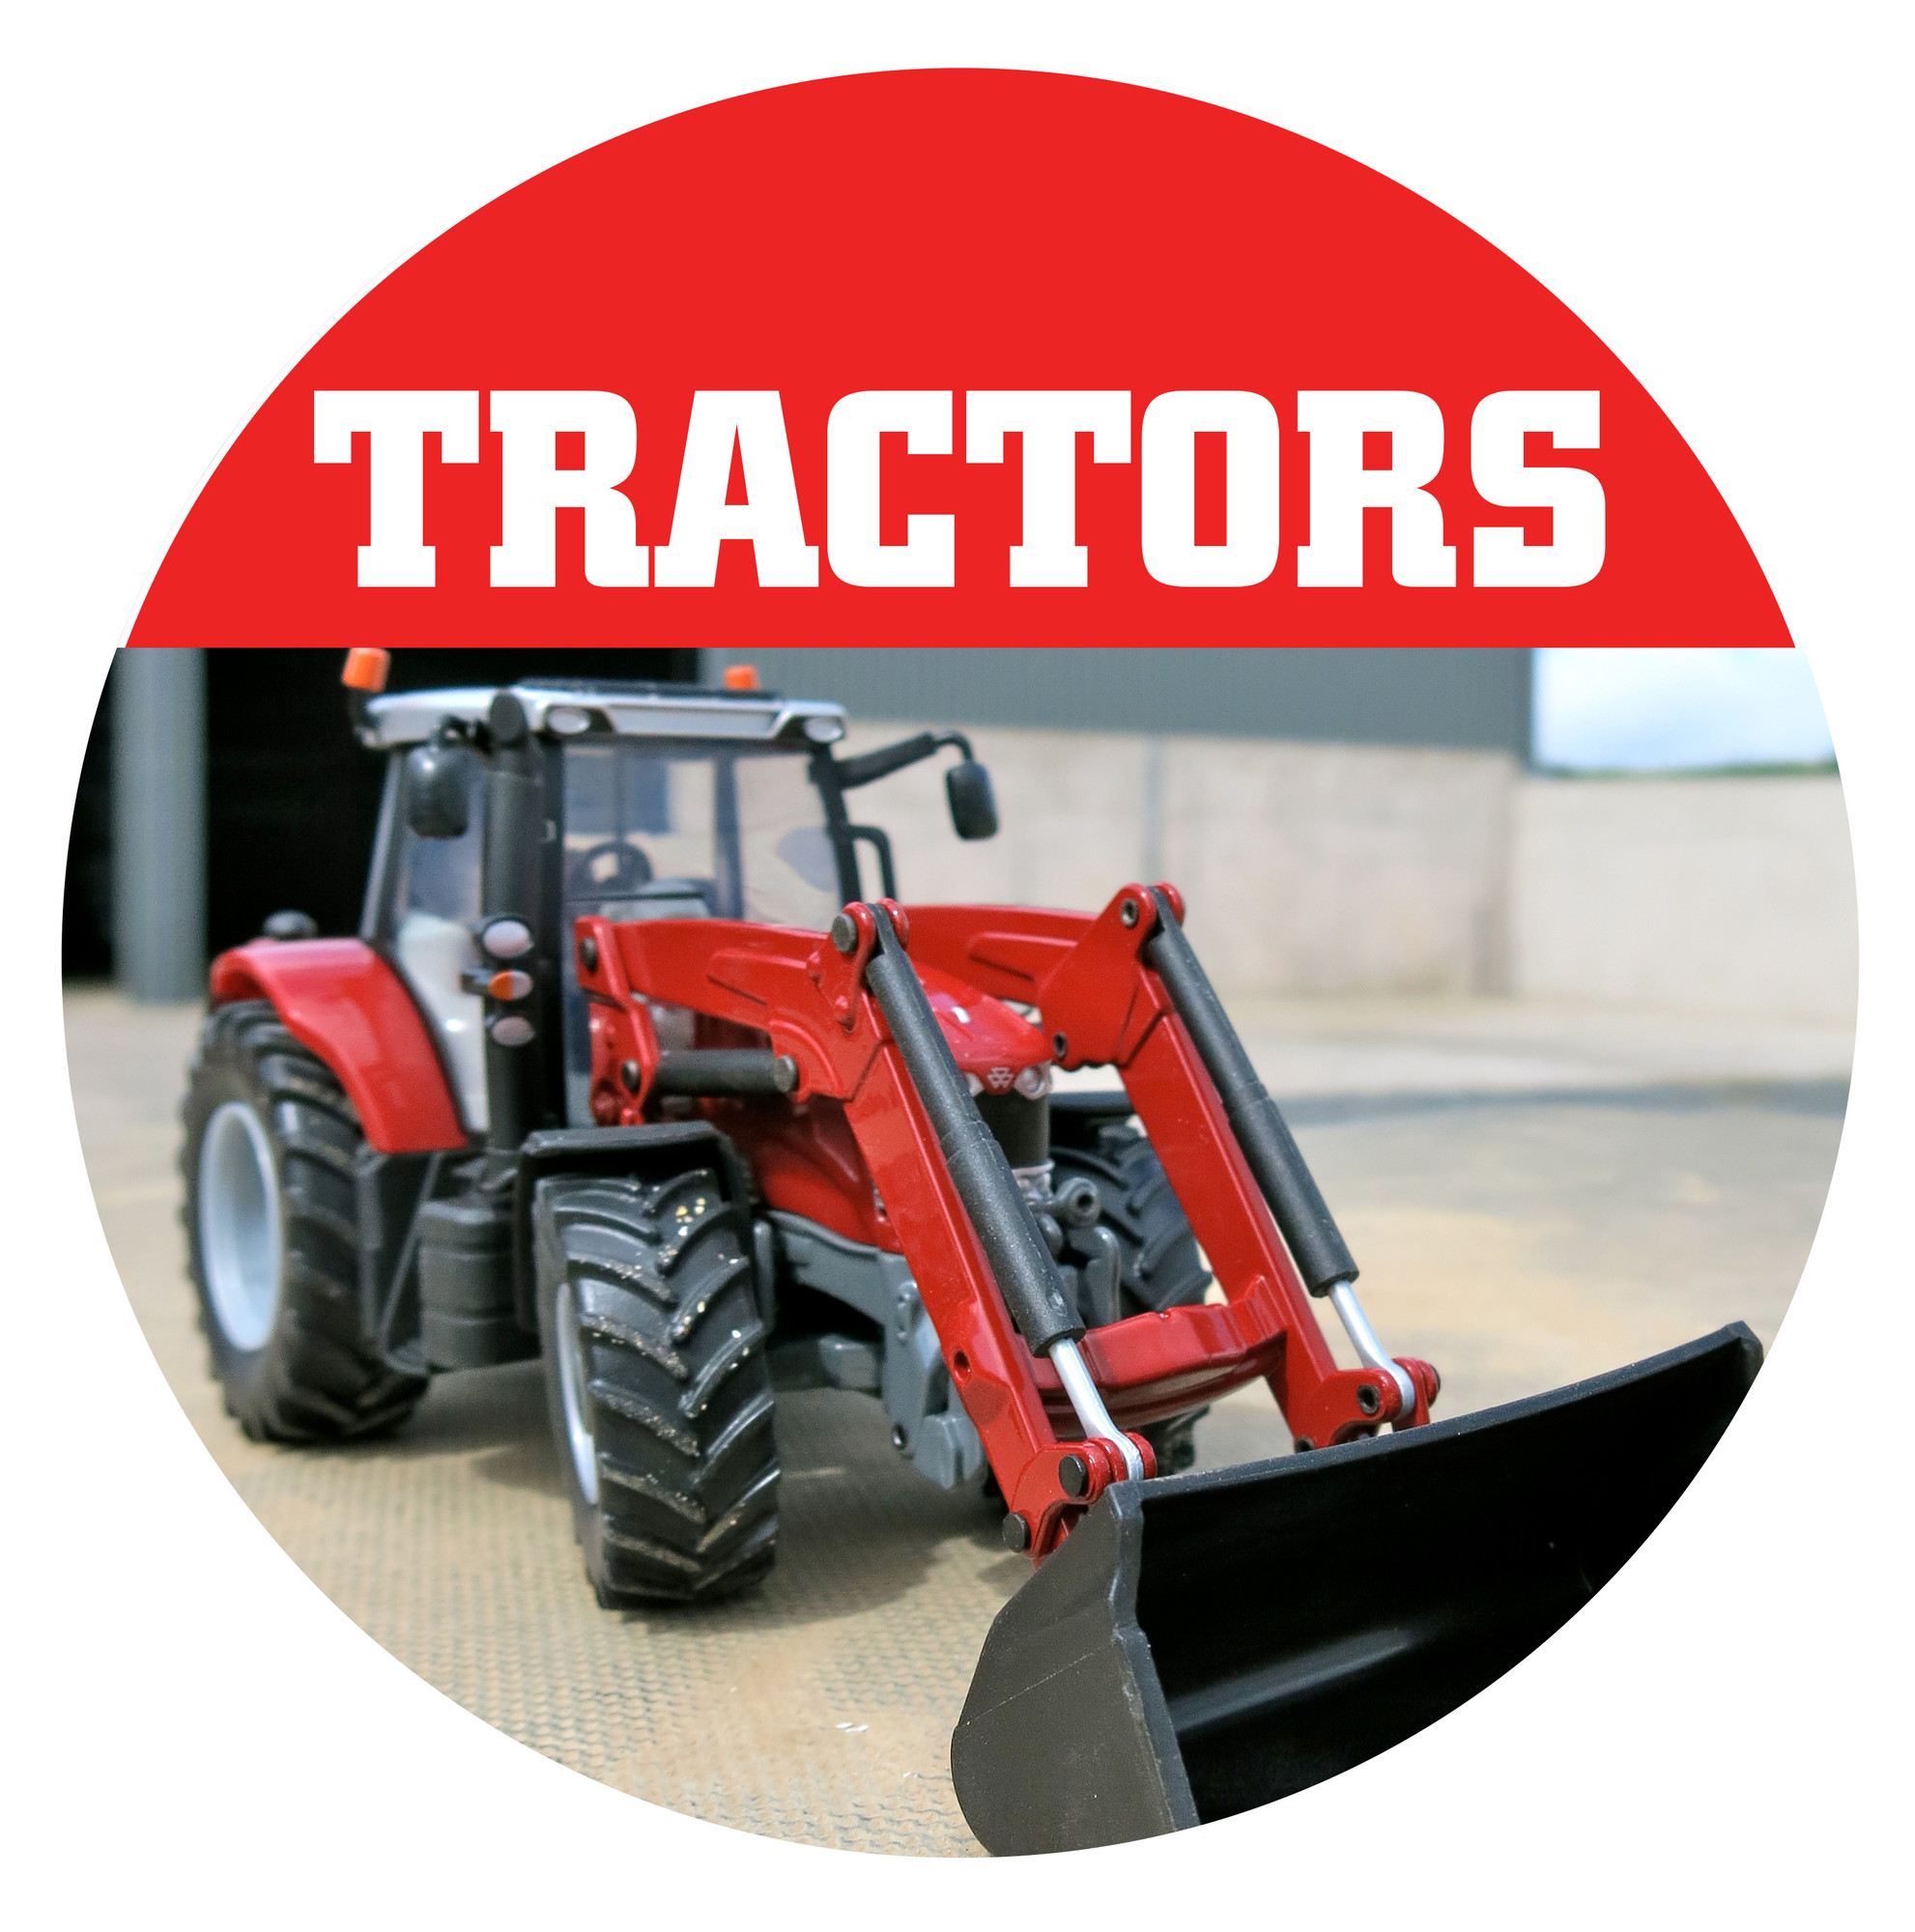 rs10887-britains-call-outs-tractors-lpr-1-.jpg